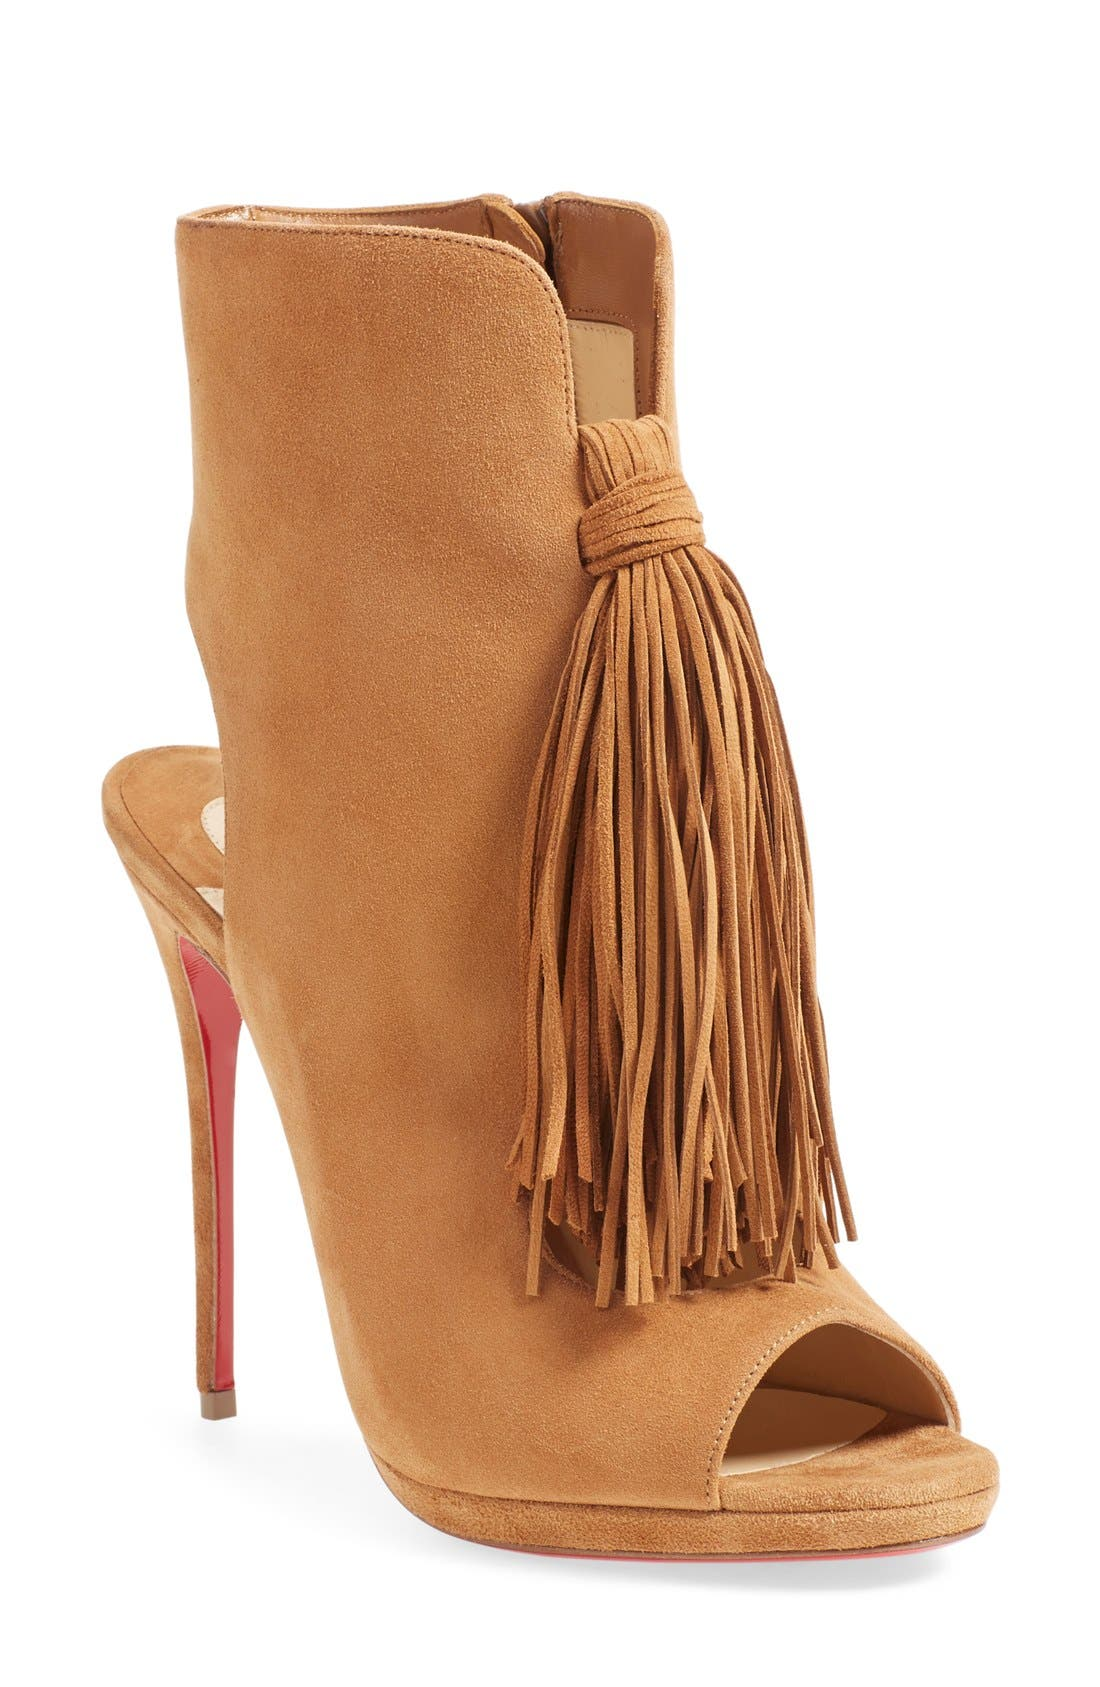 Alternate Image 1 Selected - Christian Louboutin 'Ottoka' Fringe Sandal